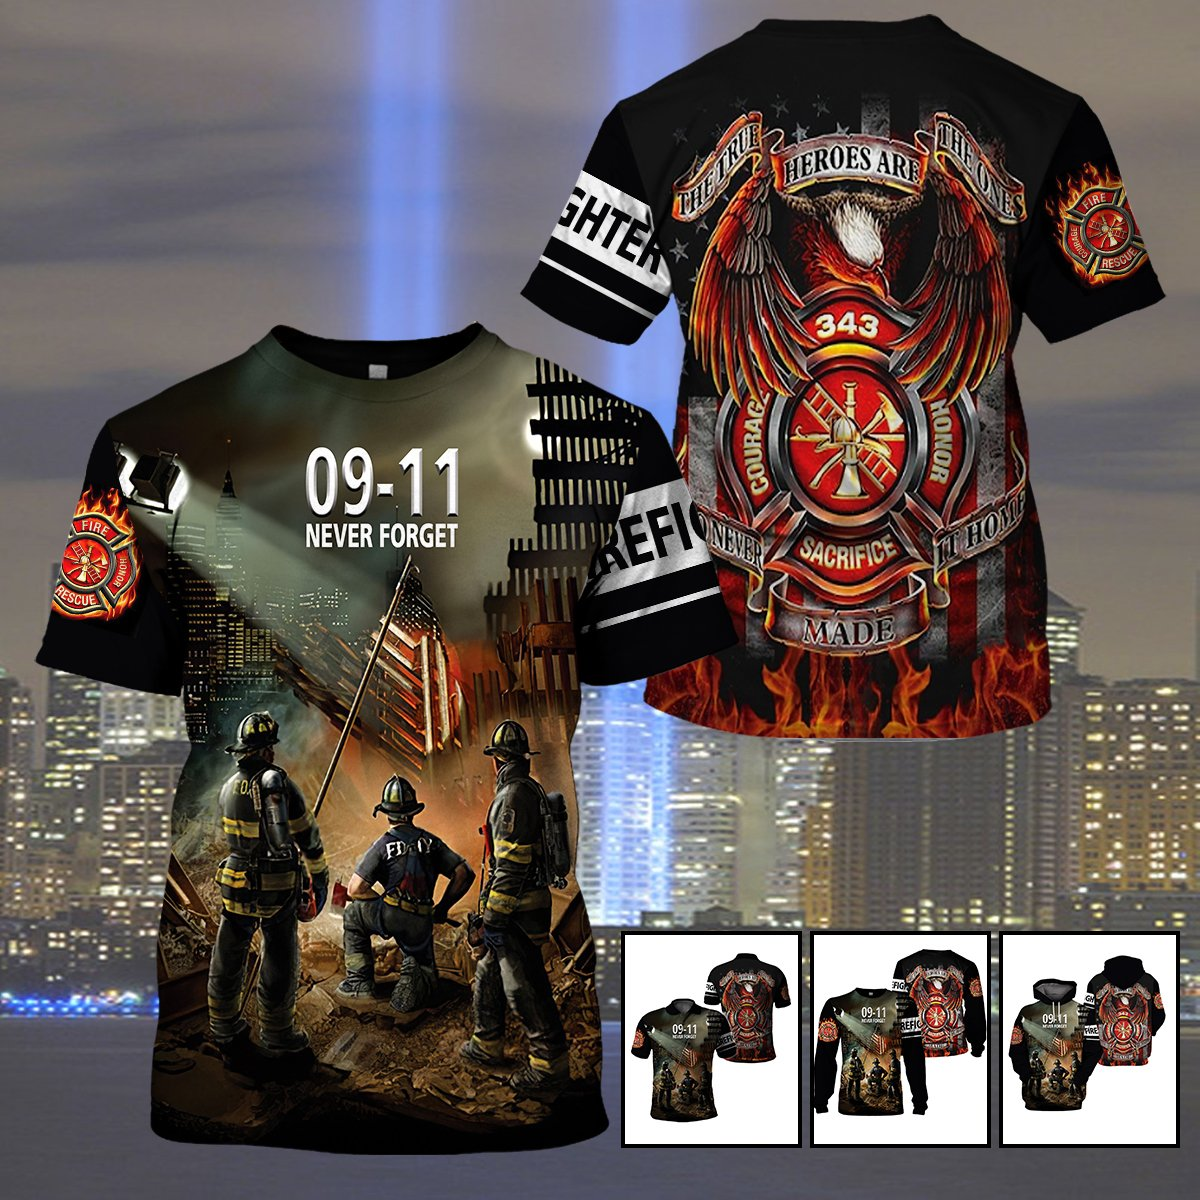 U.S Firefighters - Never forget 09/11 - 343 Our Fallen Heroes - 4zOutfitters Merchandise